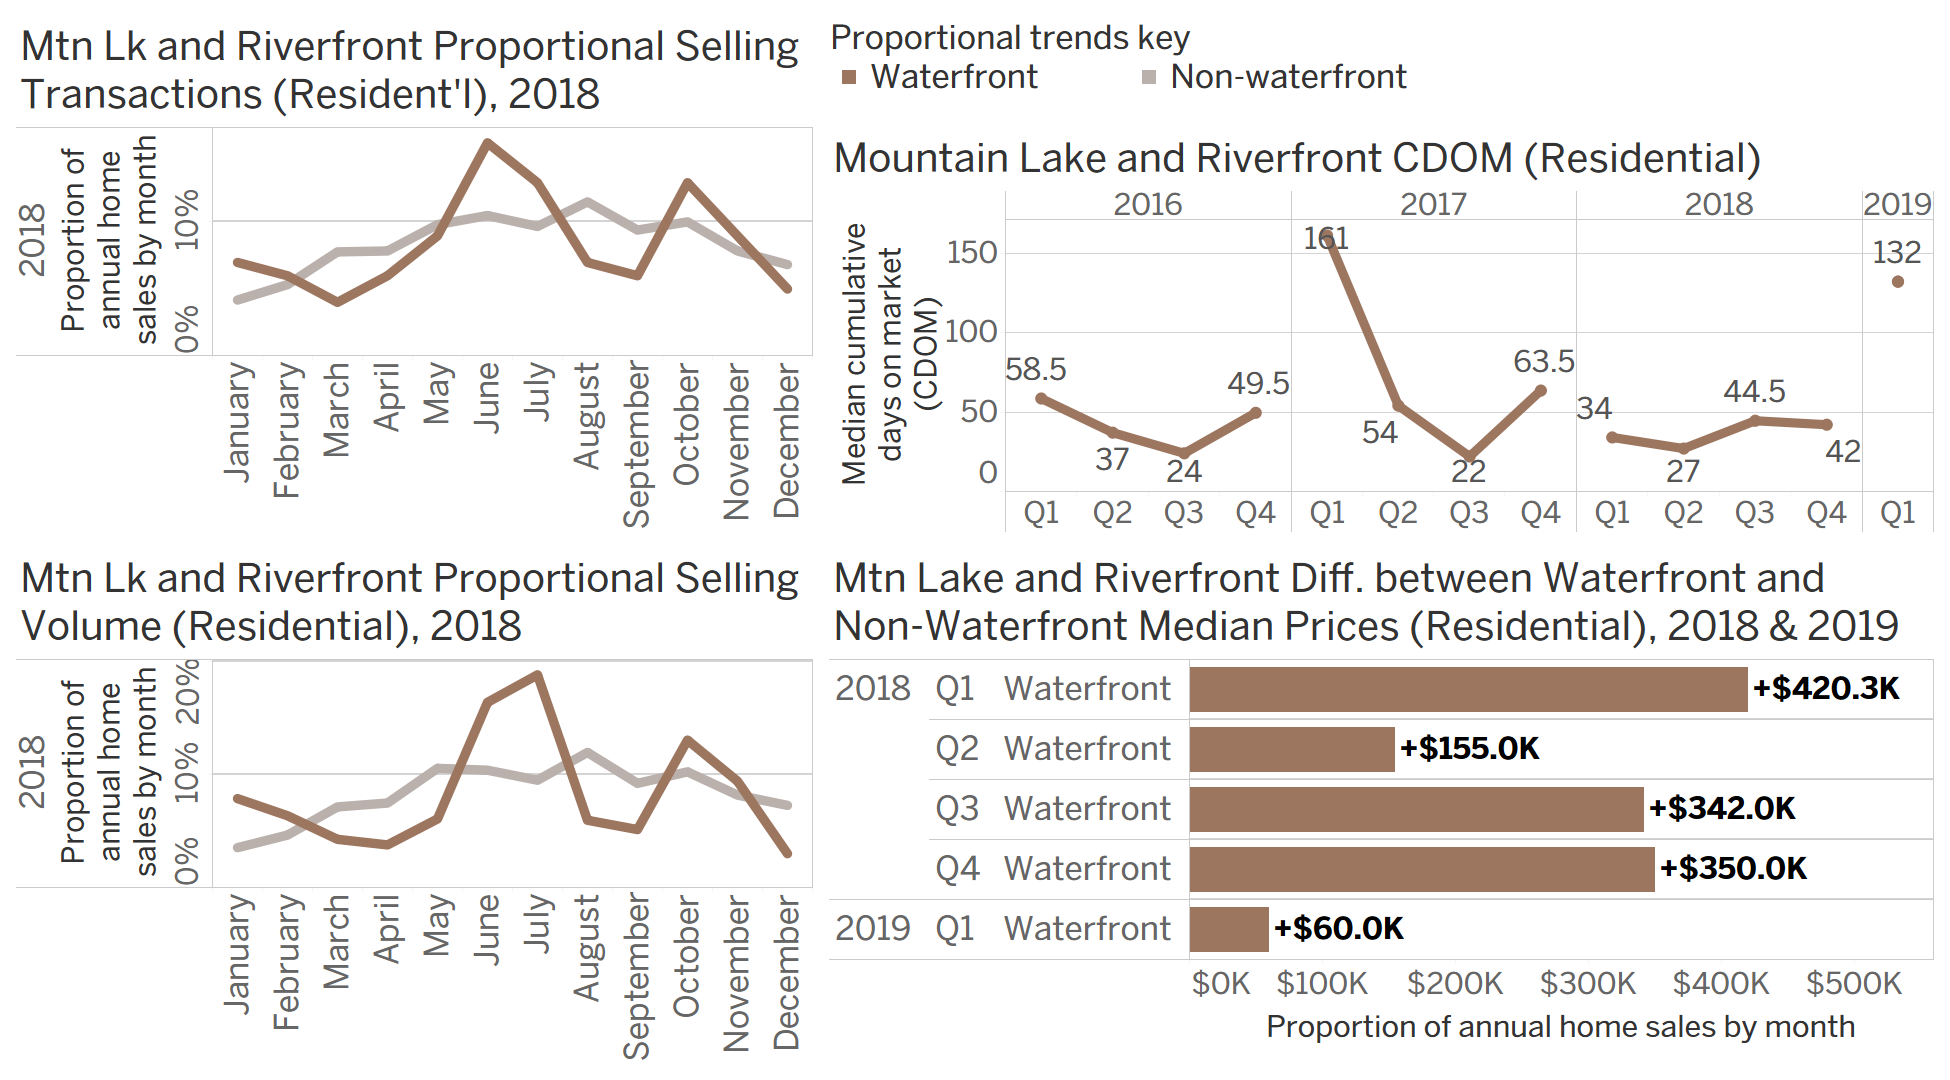 Chart Group E: seasonal waterfront transaction data for Mountain Lake and Riverfront.